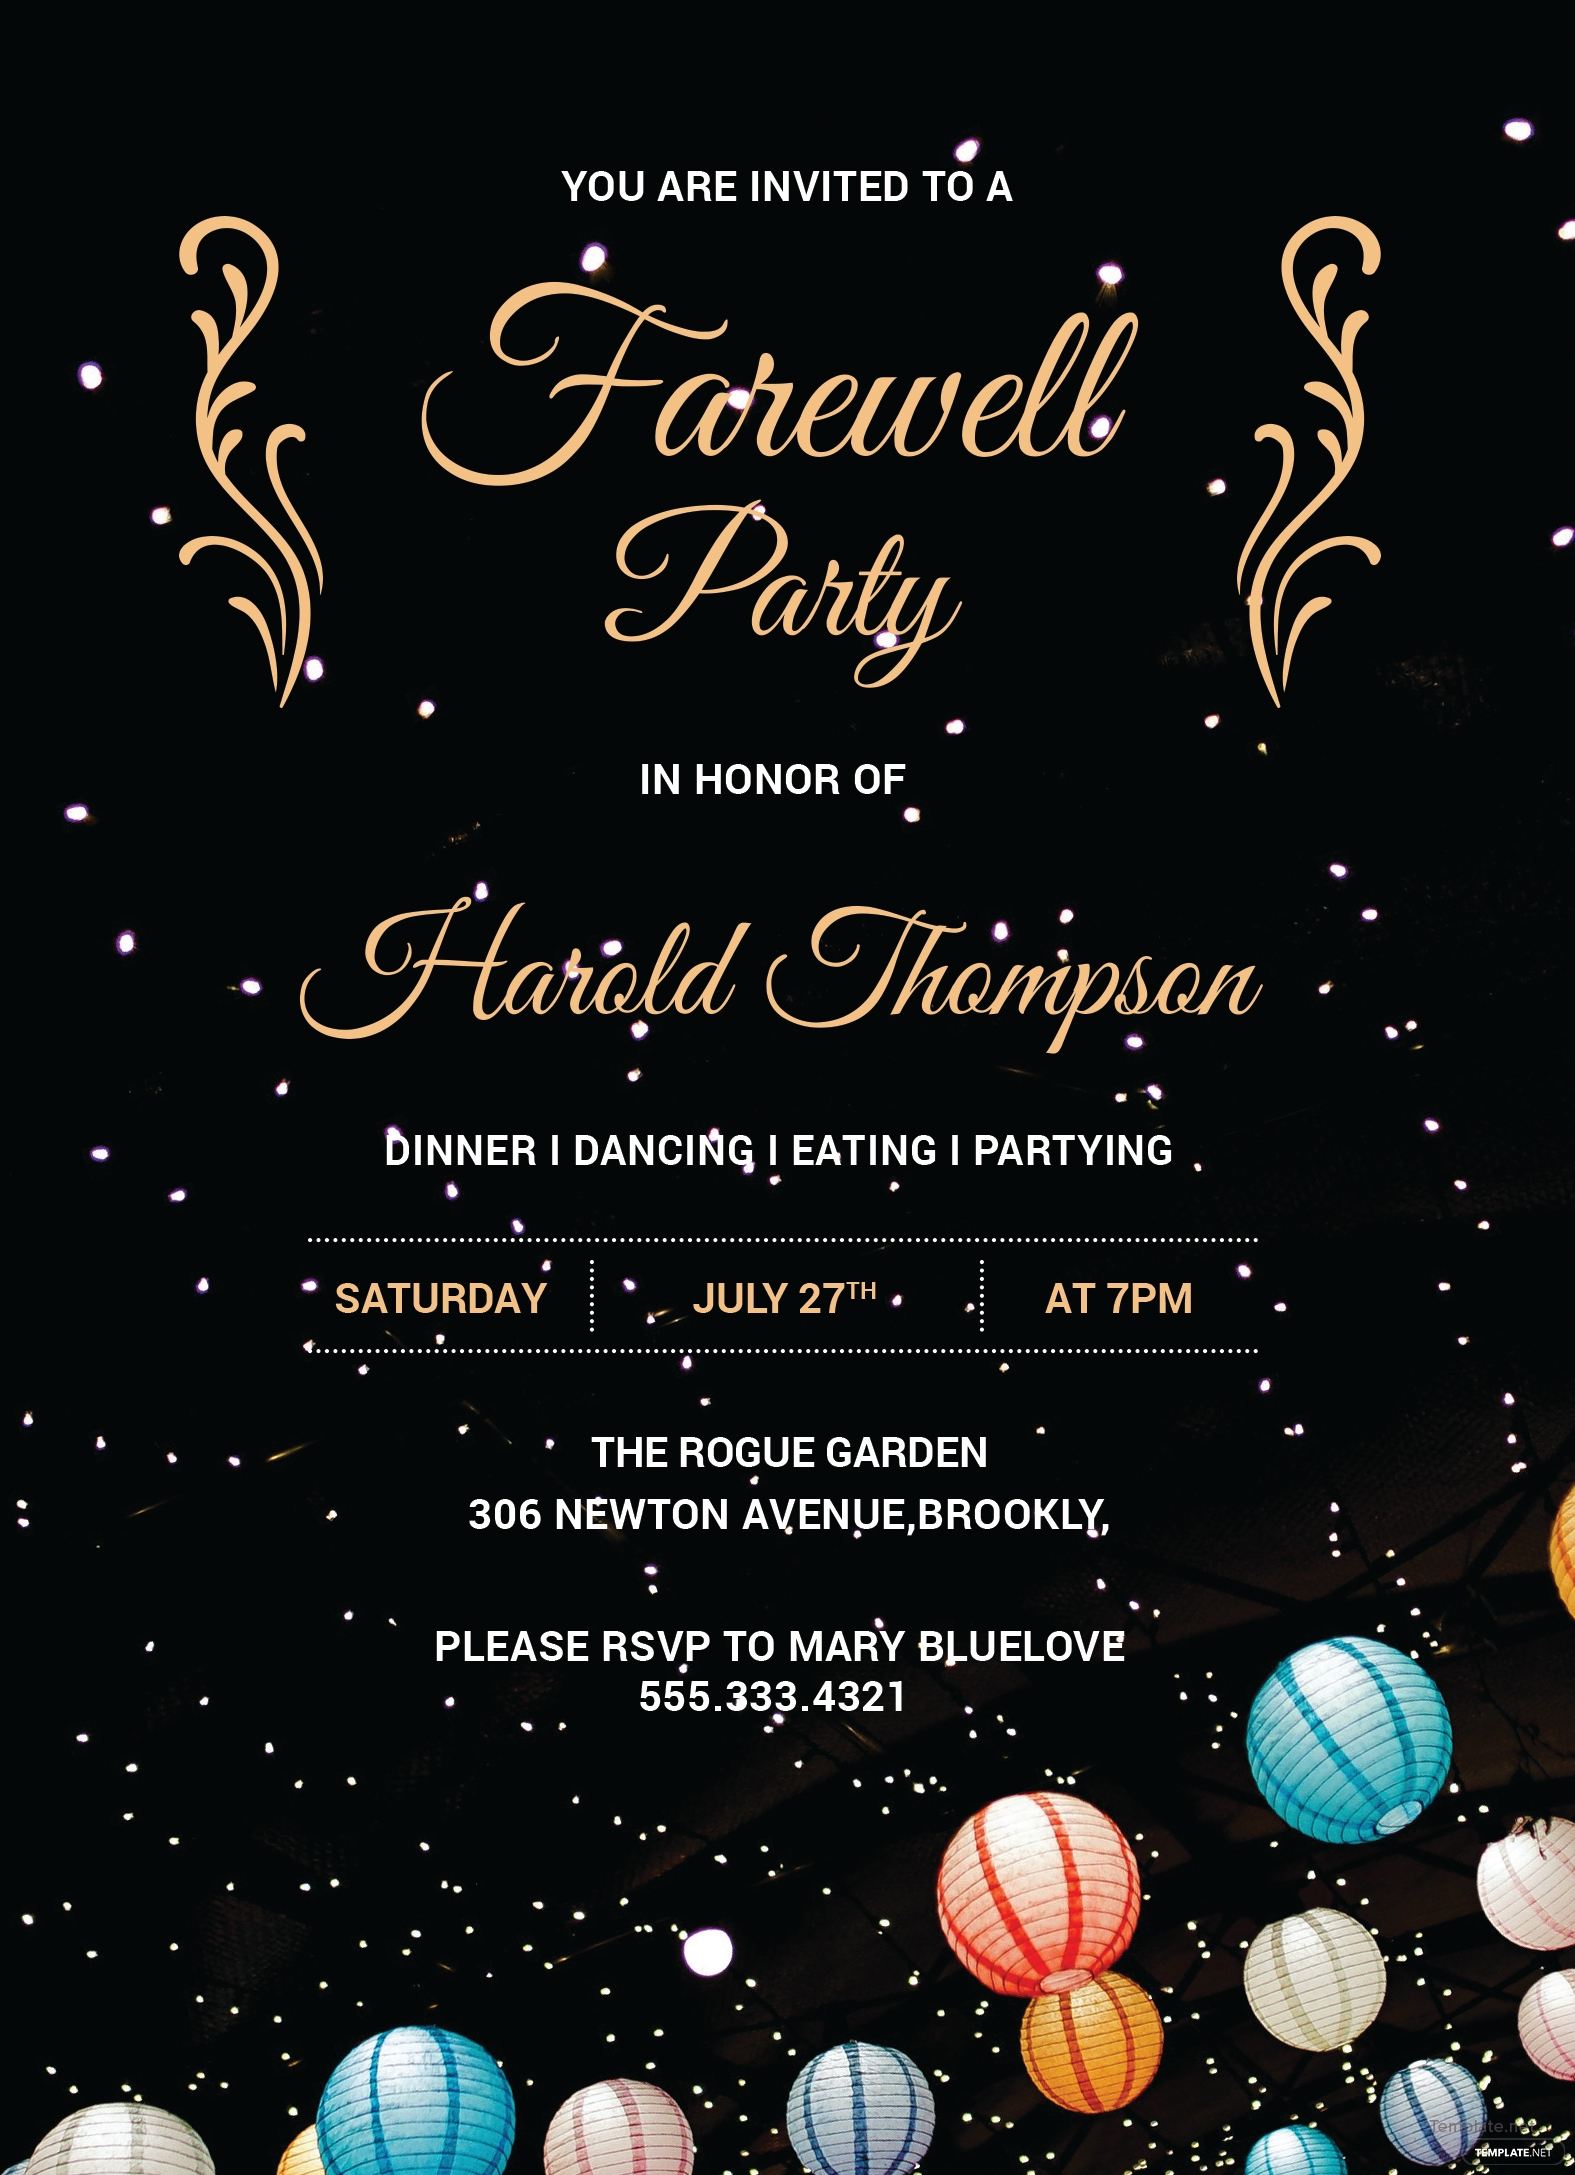 Free Farewell Party Invitation Template in Adobe Photoshop